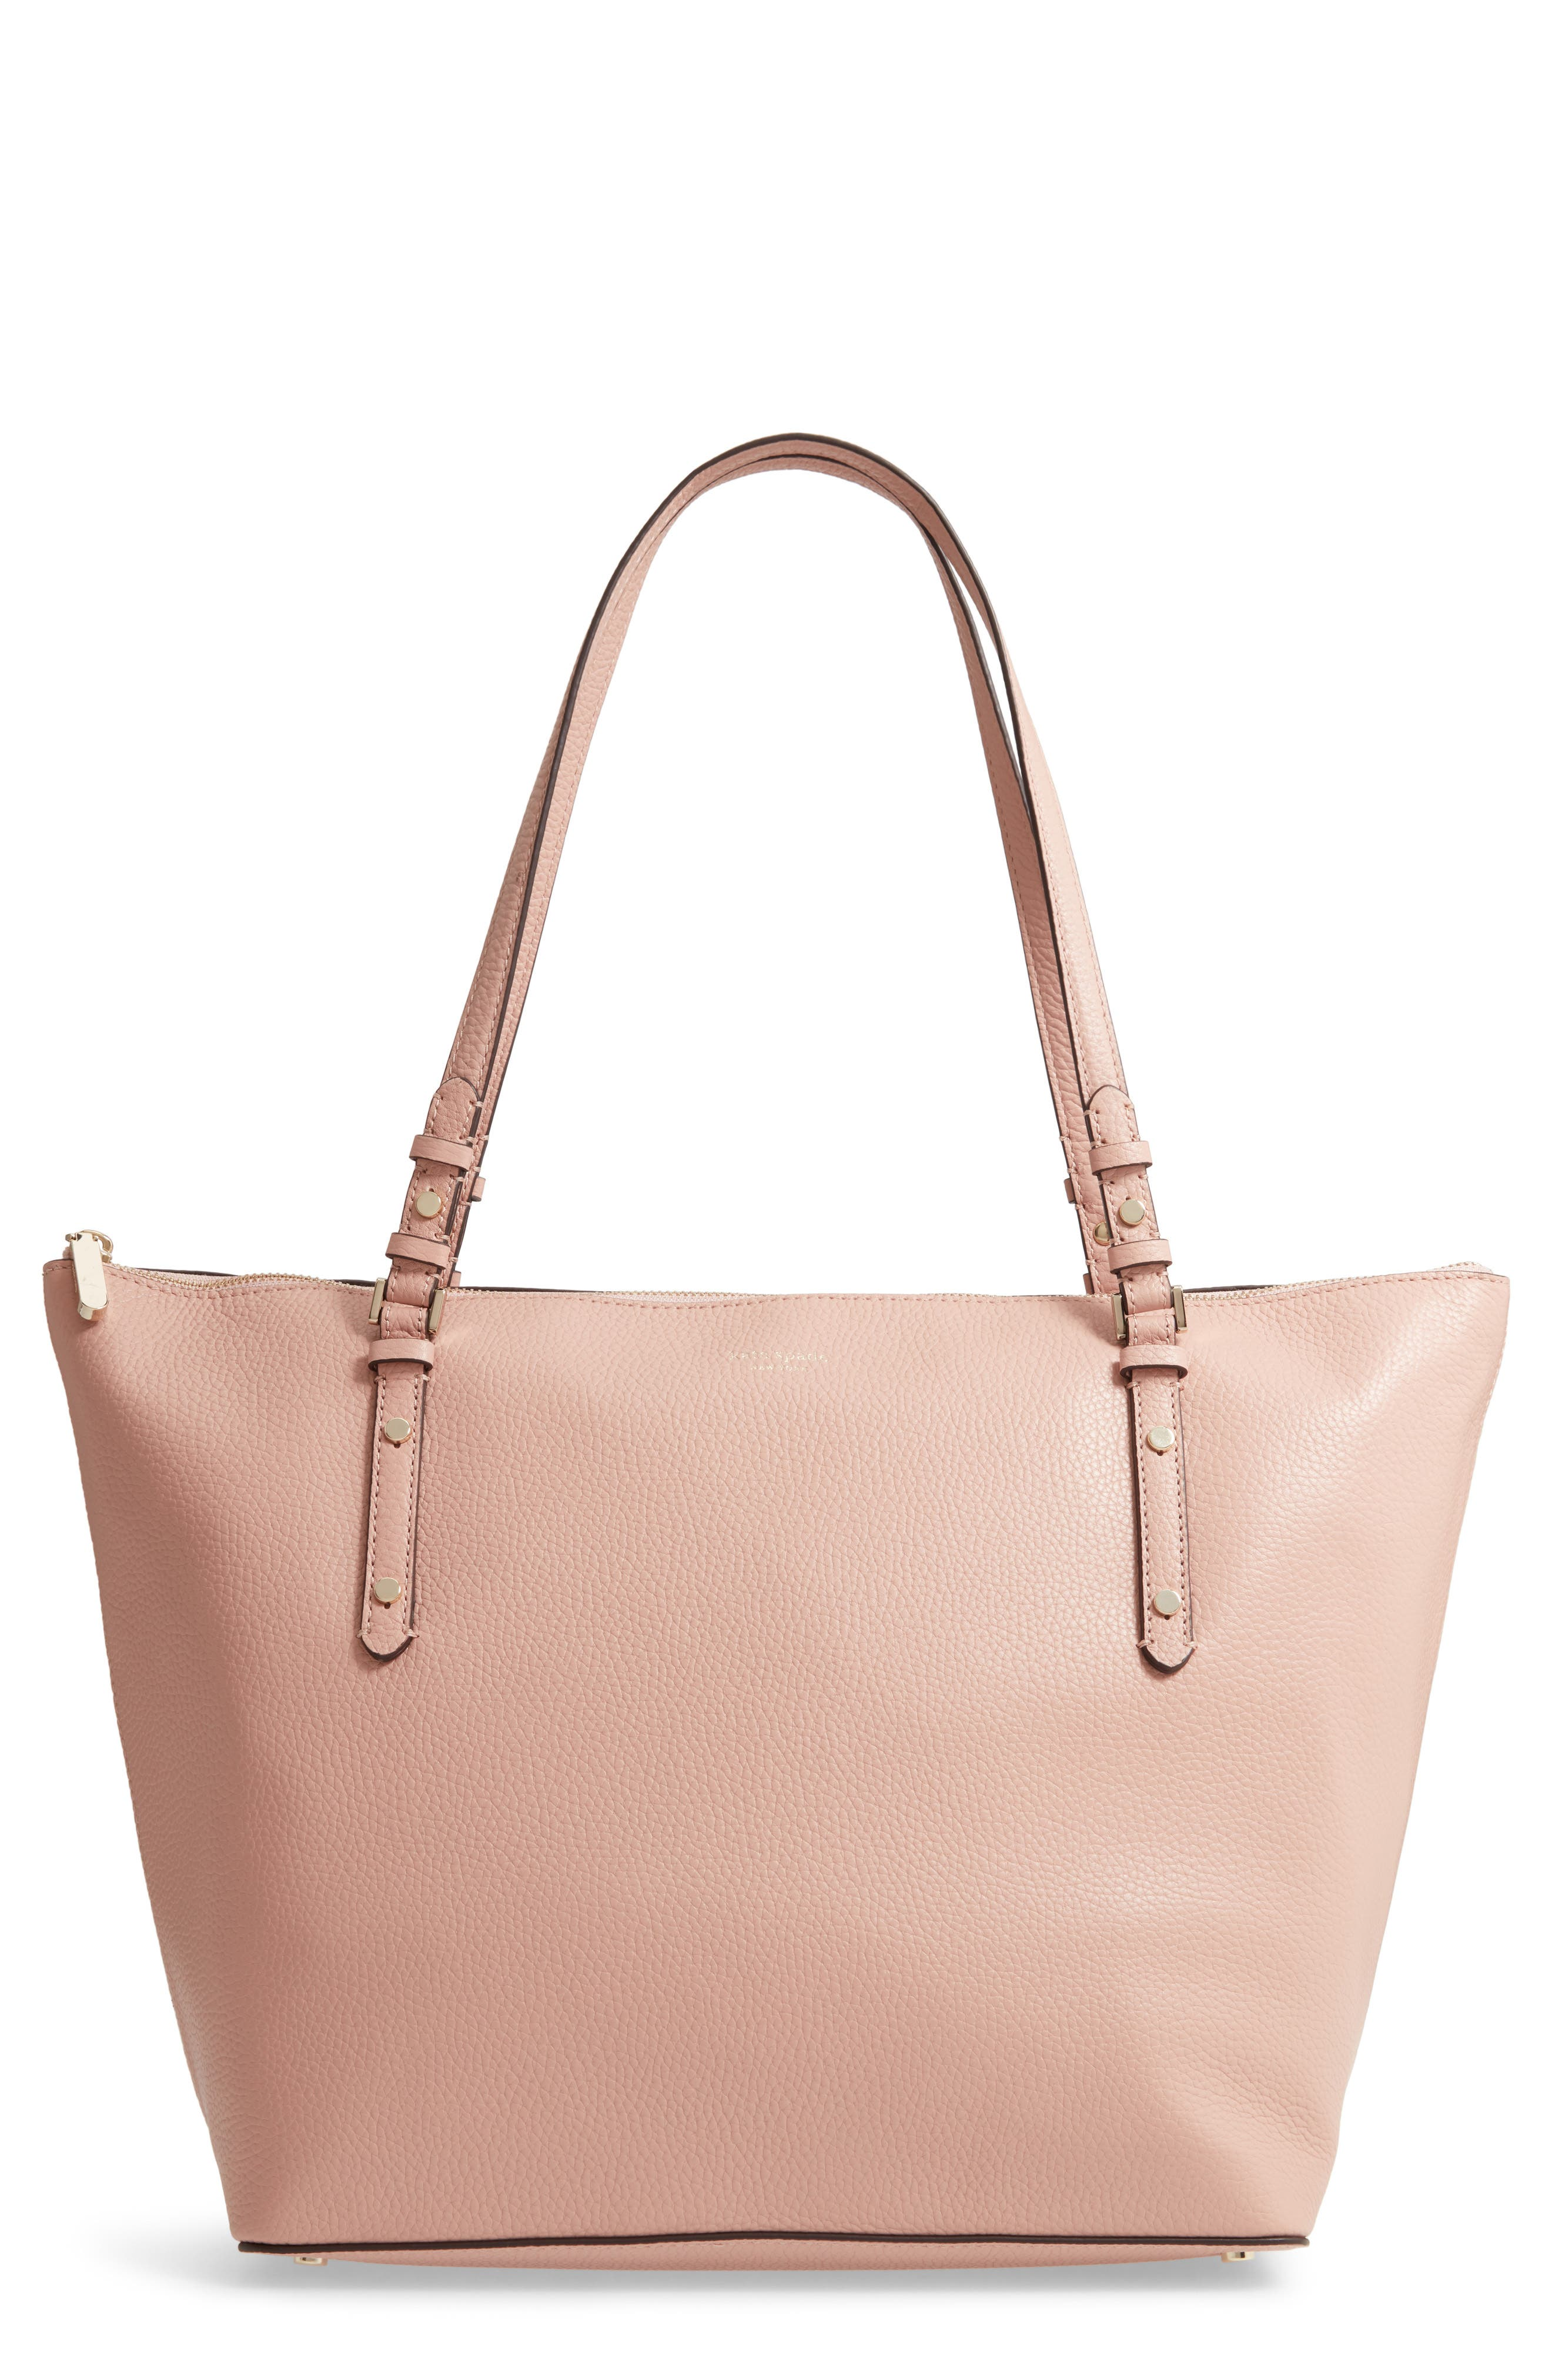 Kate Spade New York Large Polly Leather Tote